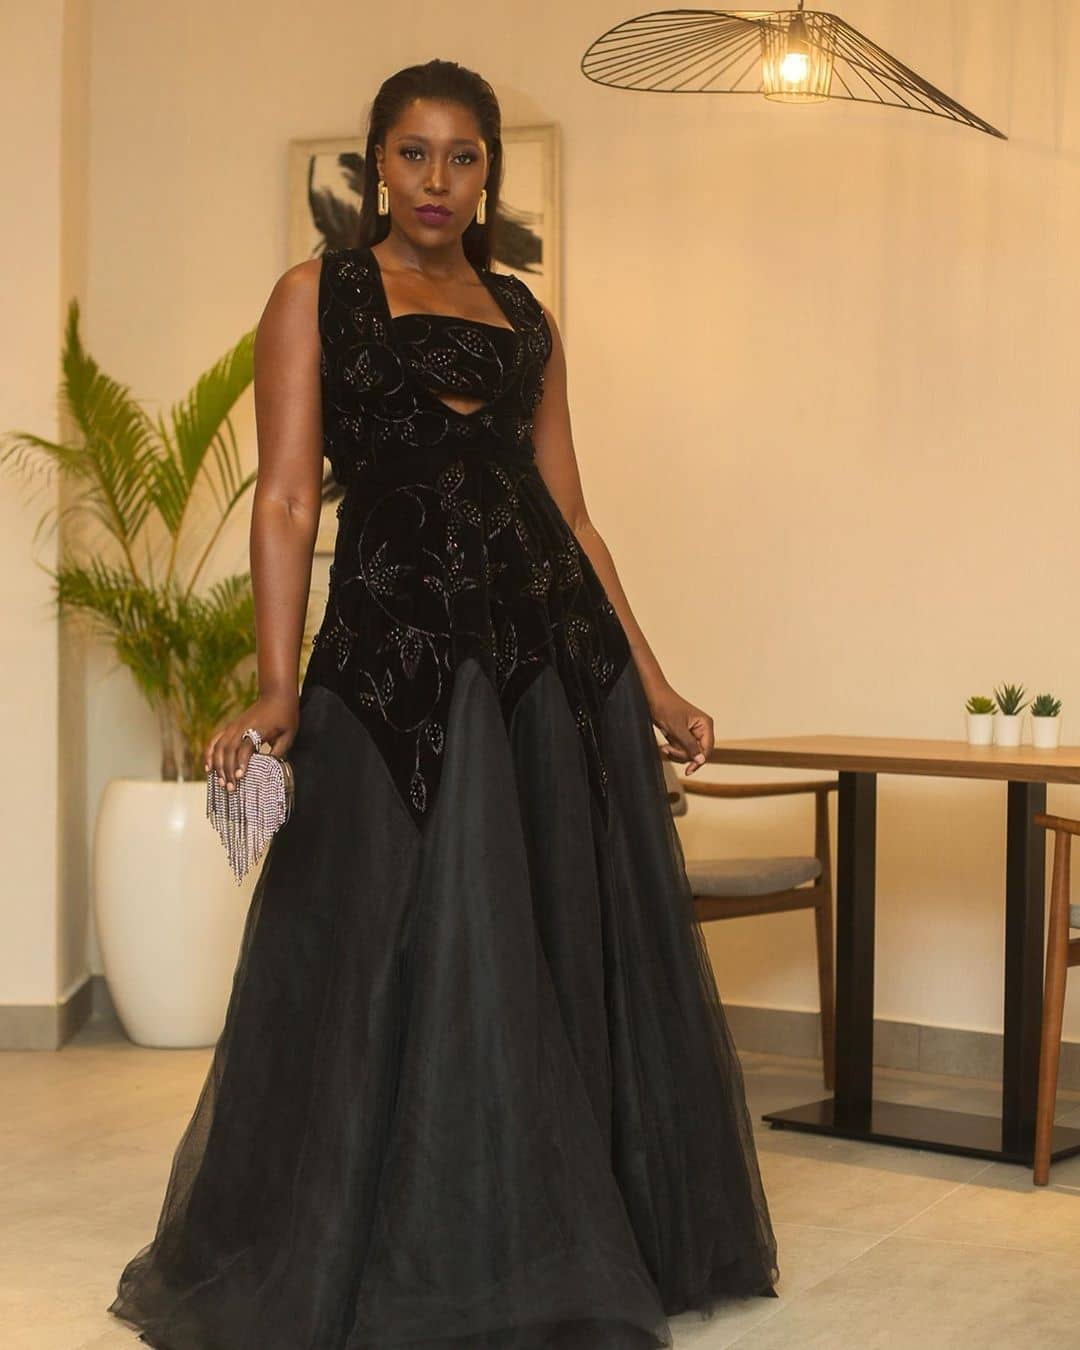 vimbai-ebony-life-films-tv-your-excellency-movie-premiere-inauguration-ball